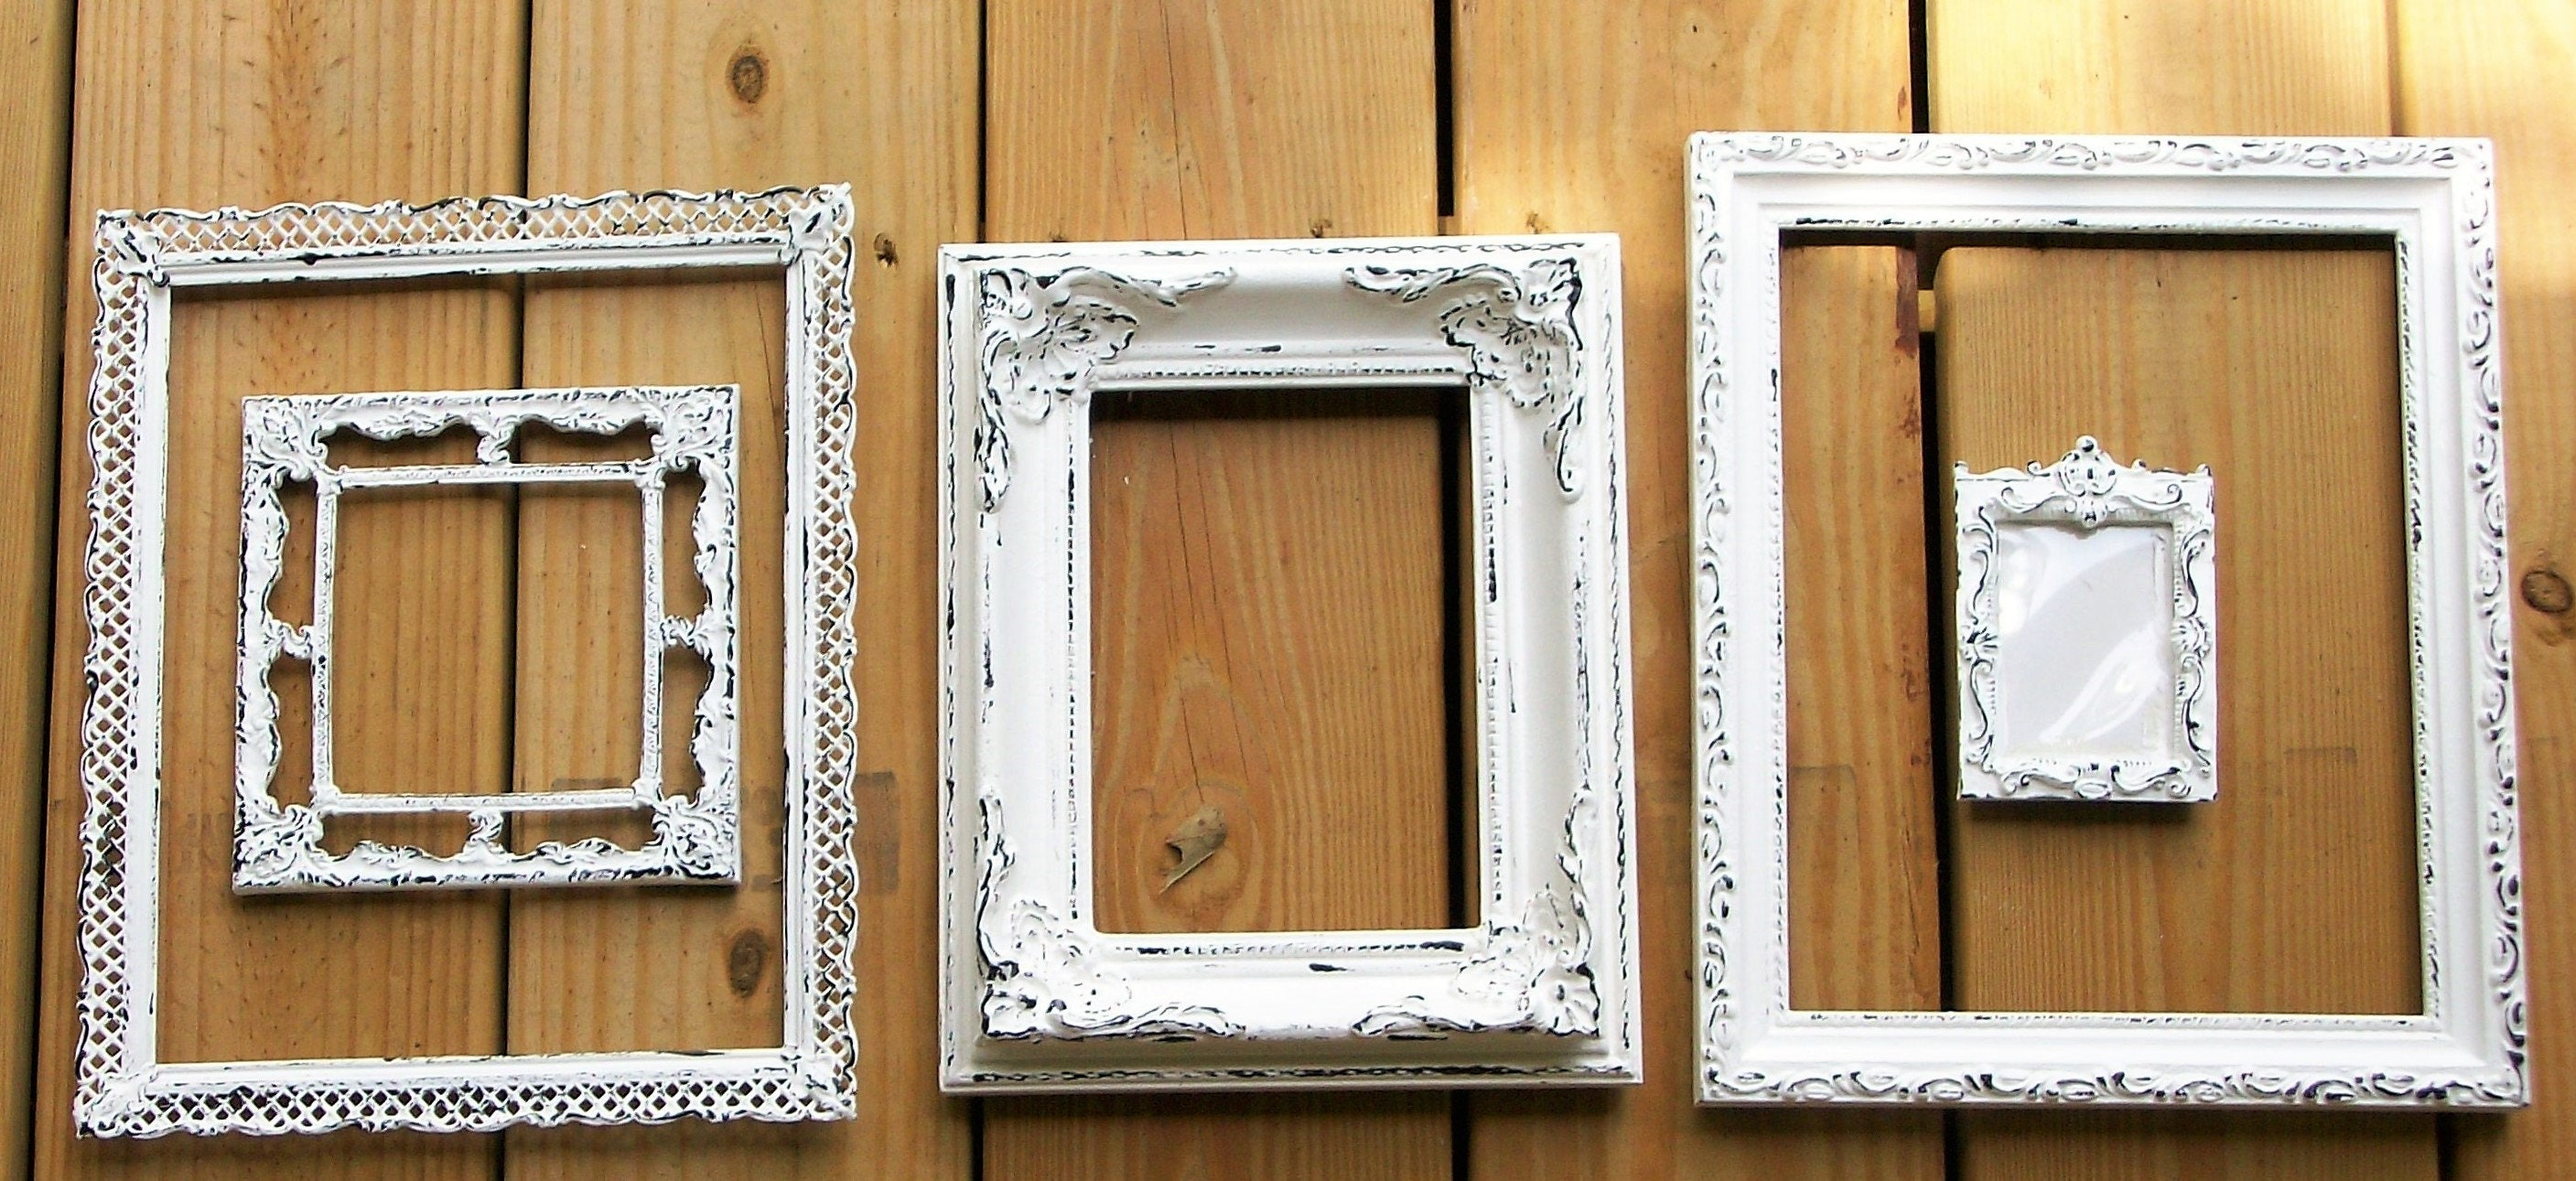 Shabby chic wall decor nursery -  Shabby Chic Chippy White Picture Frames For Gallery Wall Wedding Decor Nursery Decor Frames Sold By Dirtroaddecor